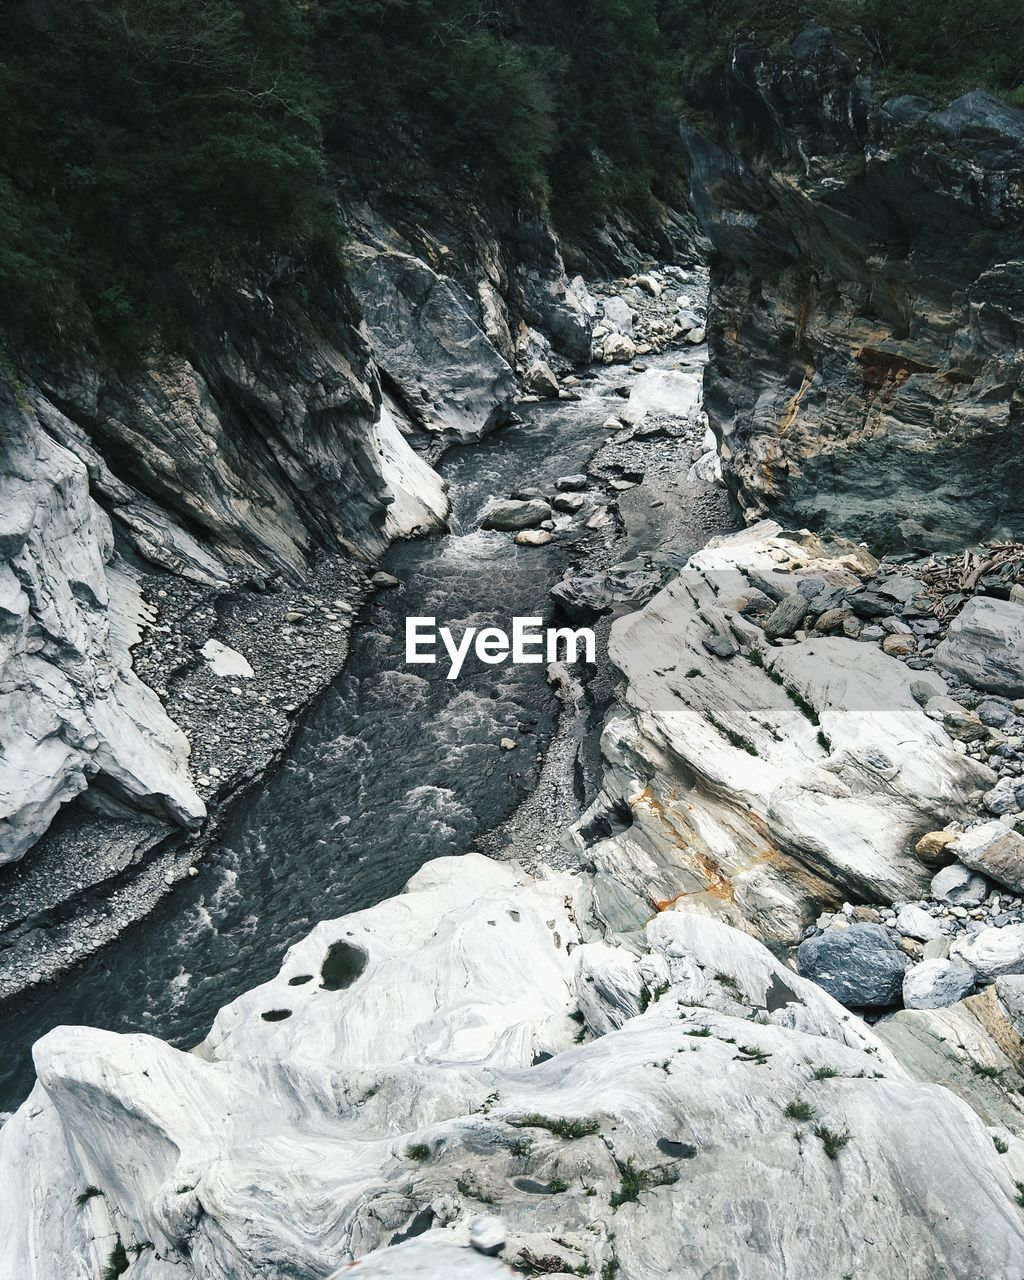 rock, nature, day, rock - object, solid, beauty in nature, no people, land, outdoors, rock formation, environment, non-urban scene, tree, tranquility, textured, forest, geology, plant, scenics - nature, high angle view, flowing water, flowing, eroded, formation